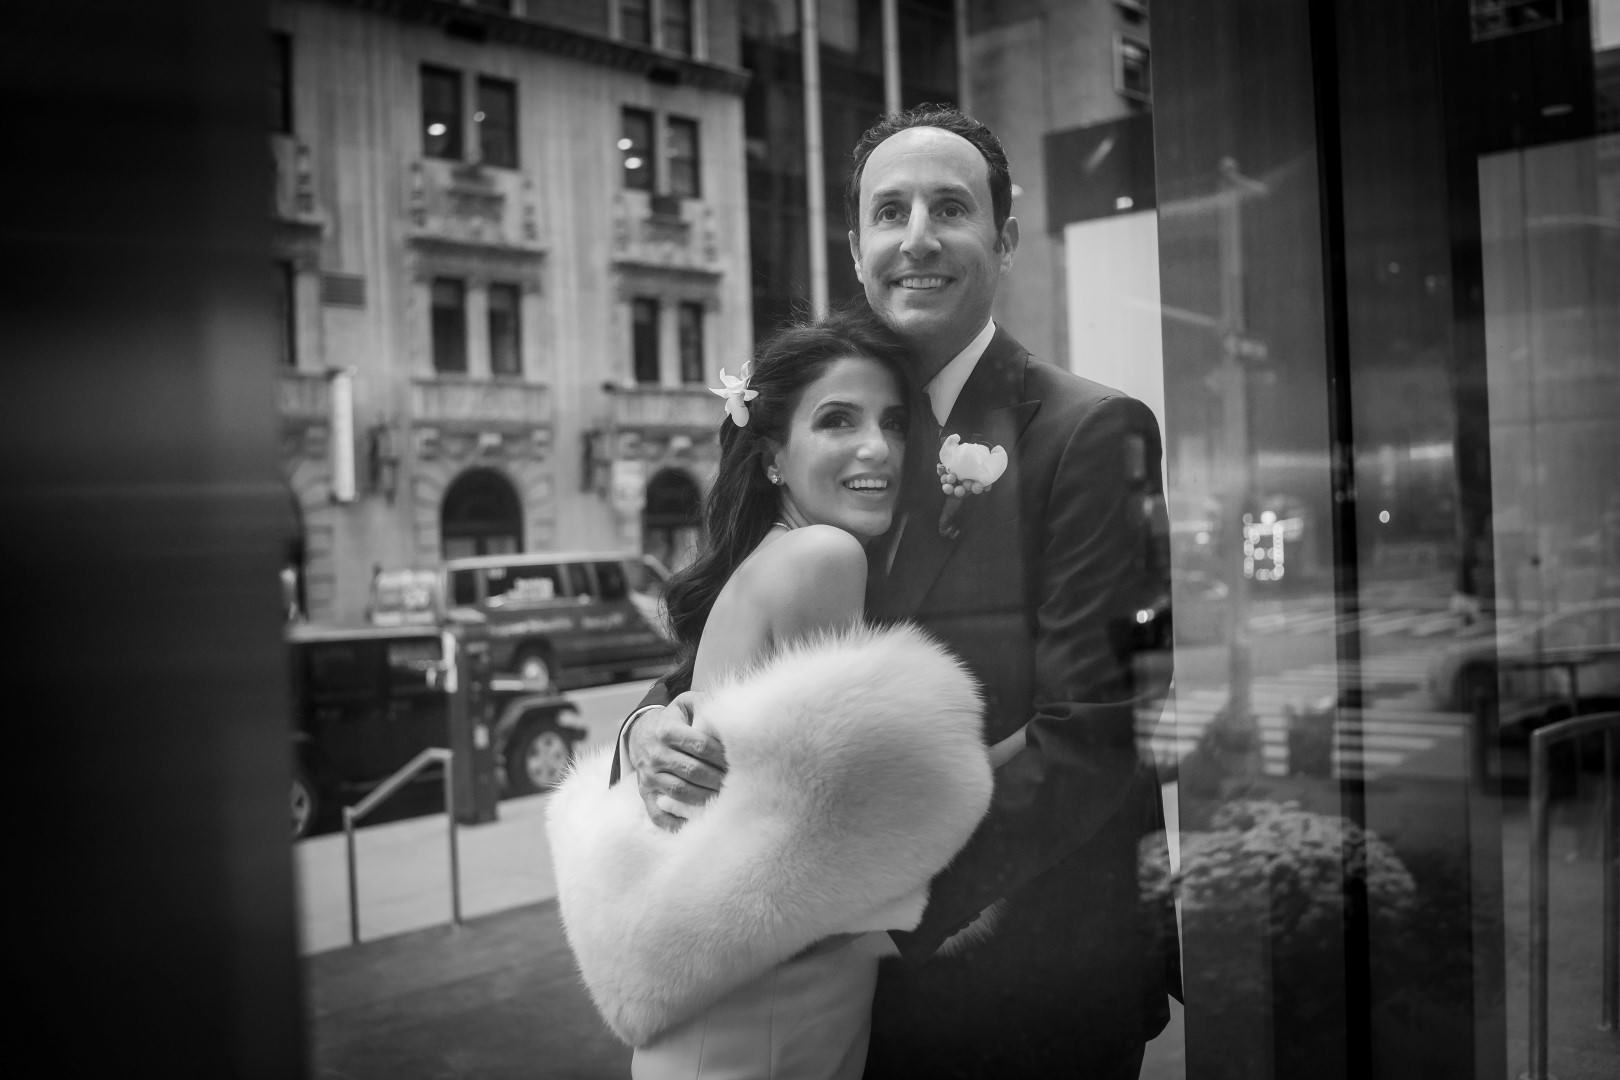 new york city artistic beautiful art wedding photography photographer photo groom bride emotional kiss walking street veil reflection black and white bw